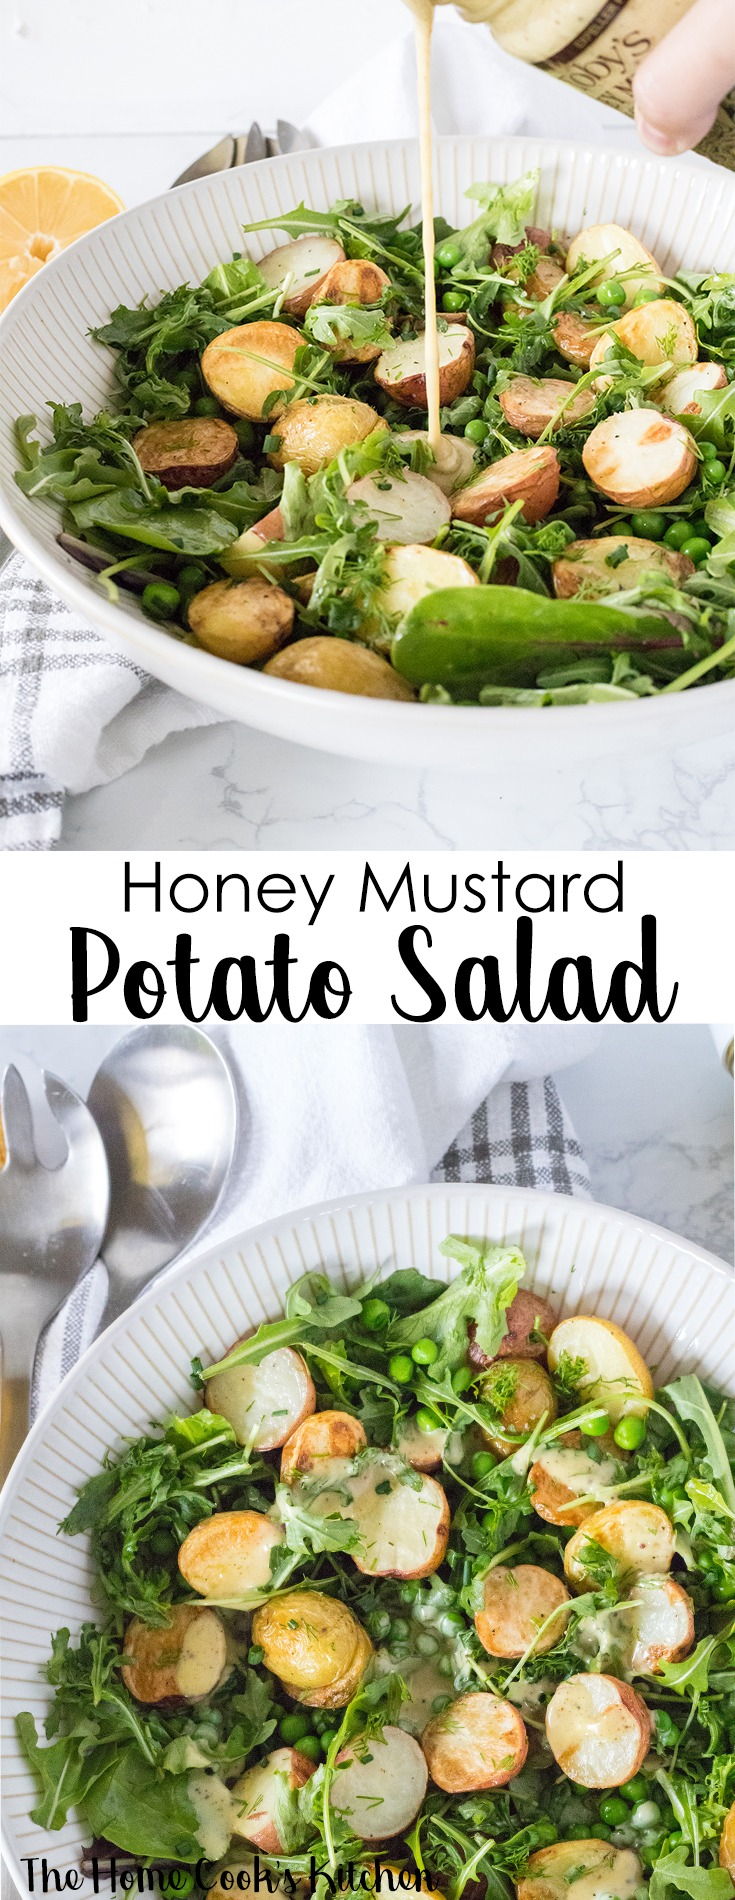 This honey mustard potato salad is a light, fresh spring salad bringing together the best of fresh spring produce. This is a quick and easy potato salad recipe, that is perfect for weekend gatherings, backyard parties, potluck or outdoor picnics. #springsalad #summersalad #potatosalad #potatosaladrecipe #saladrecipe